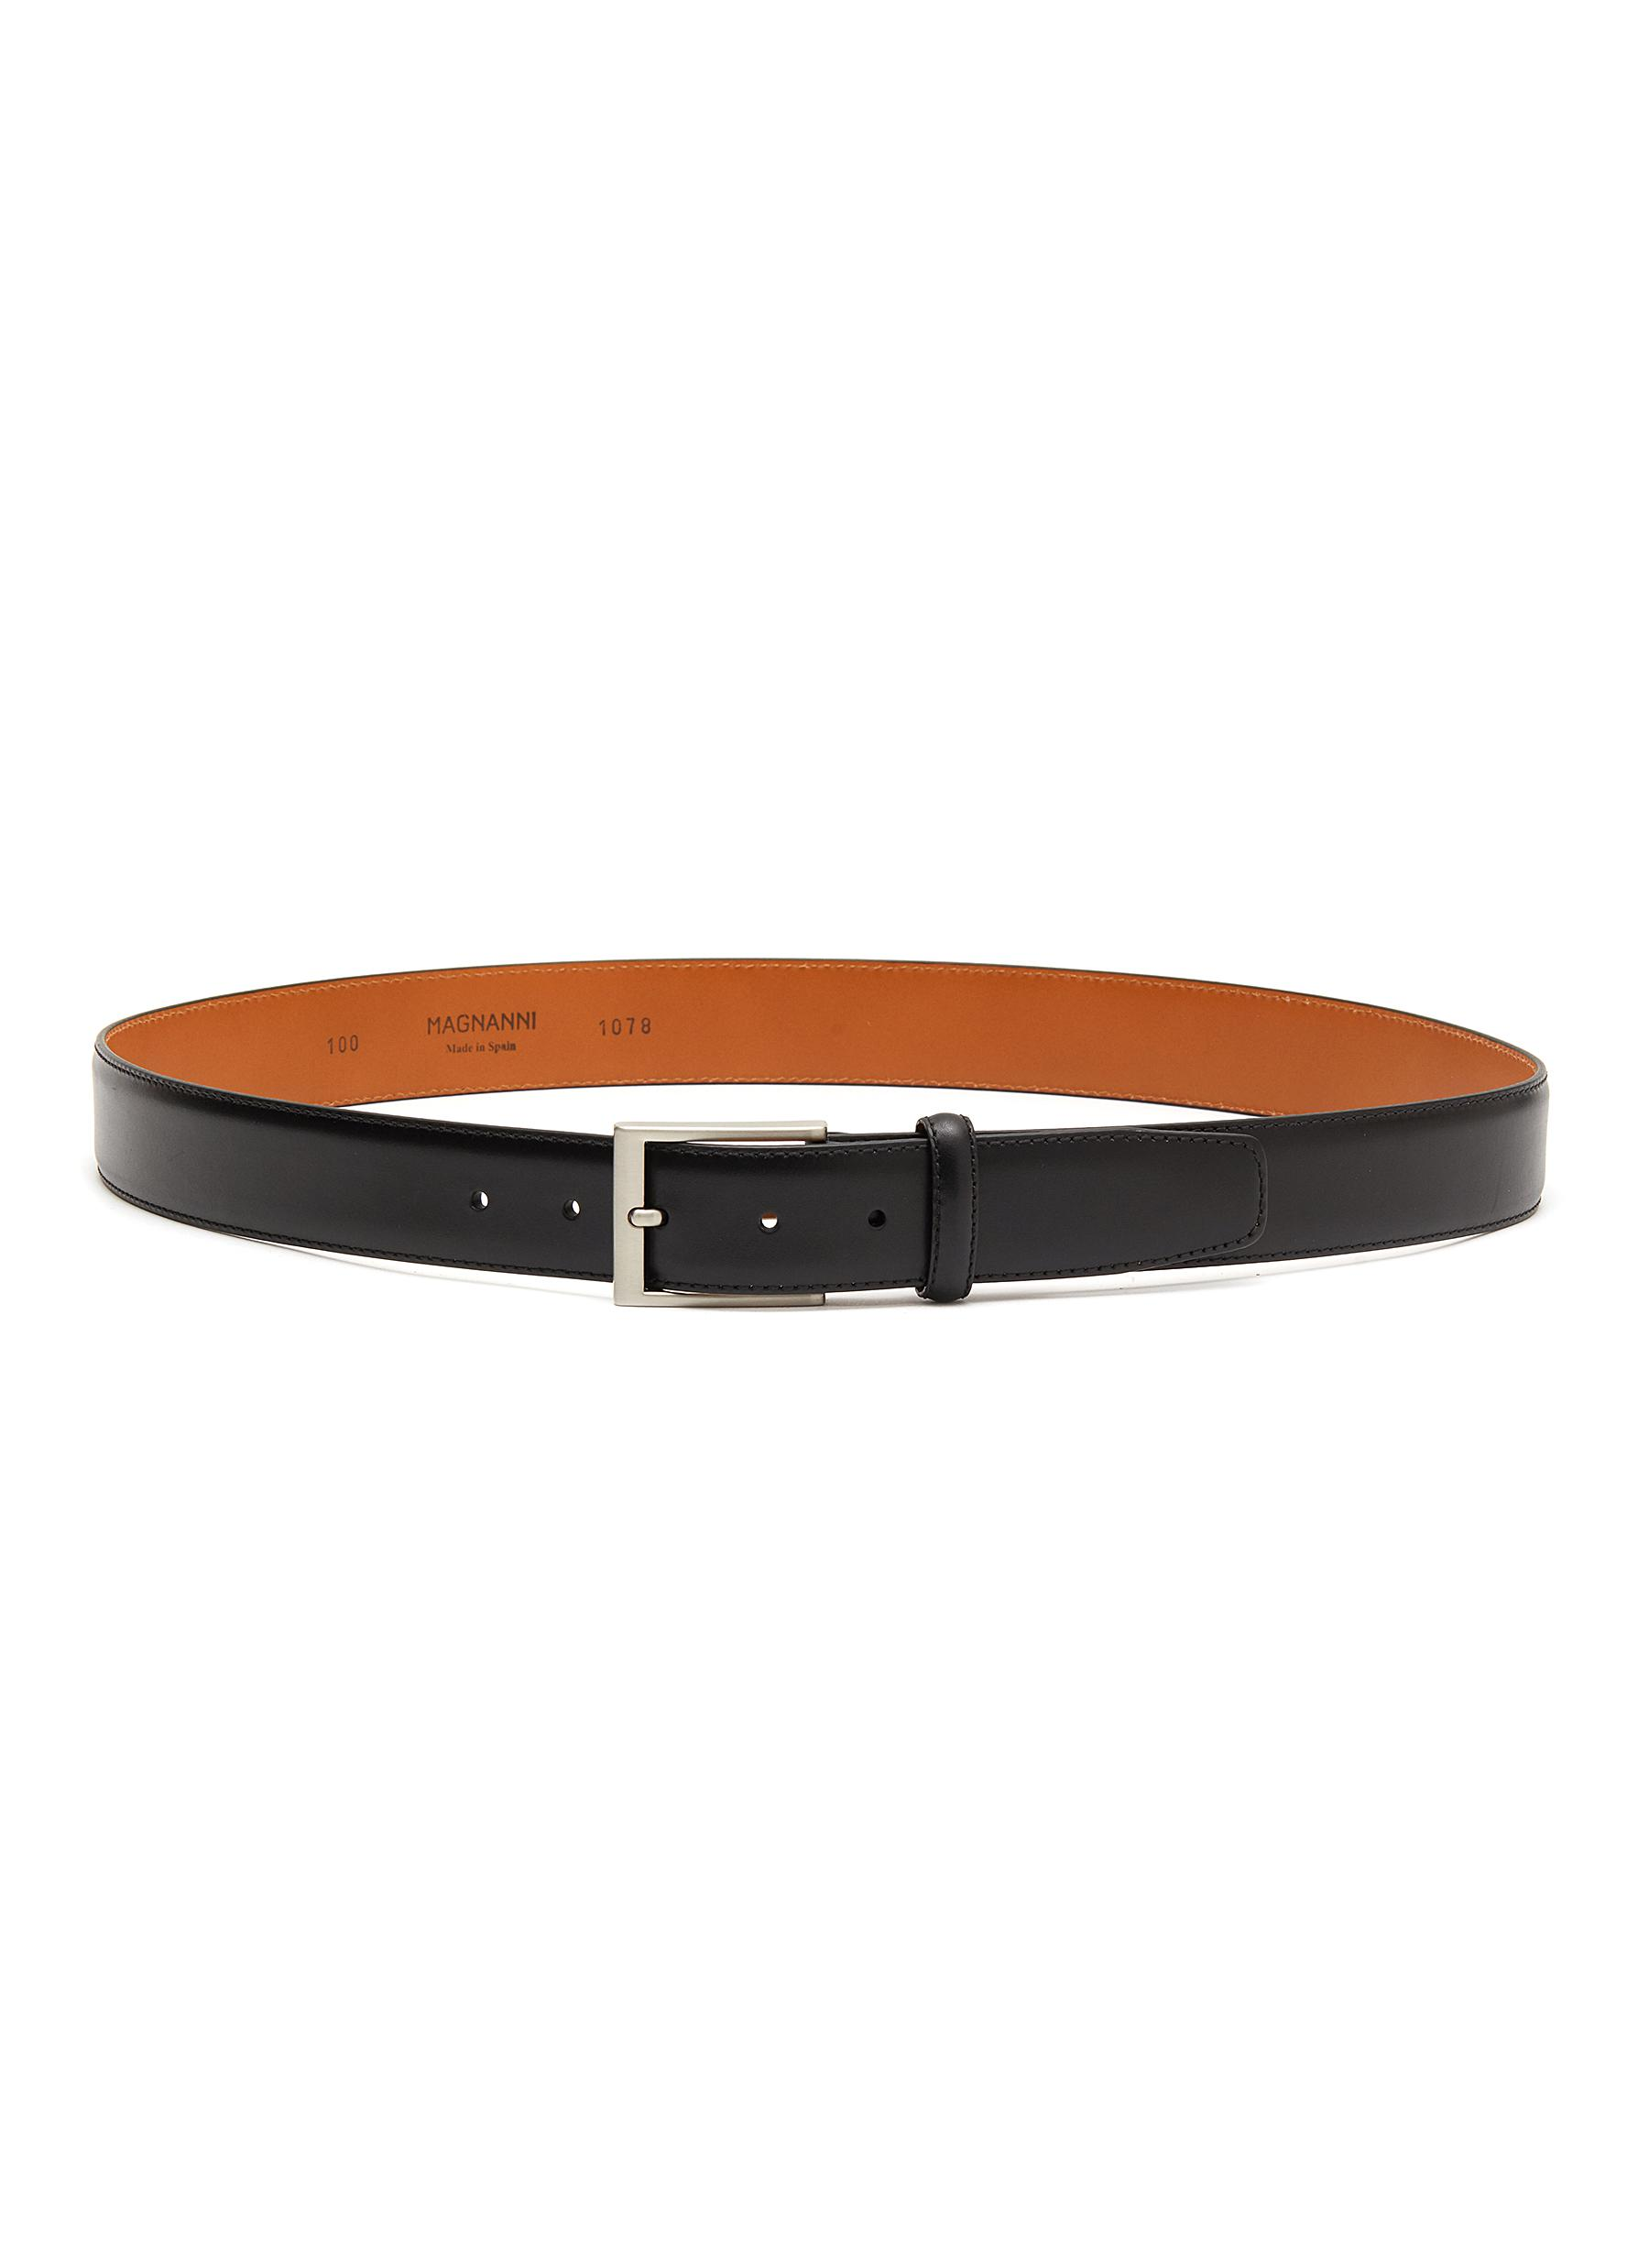 8e00033cd98f4 Main View - Click To Enlarge - MAGNANNI - 'Guodi' calfskin leather belt